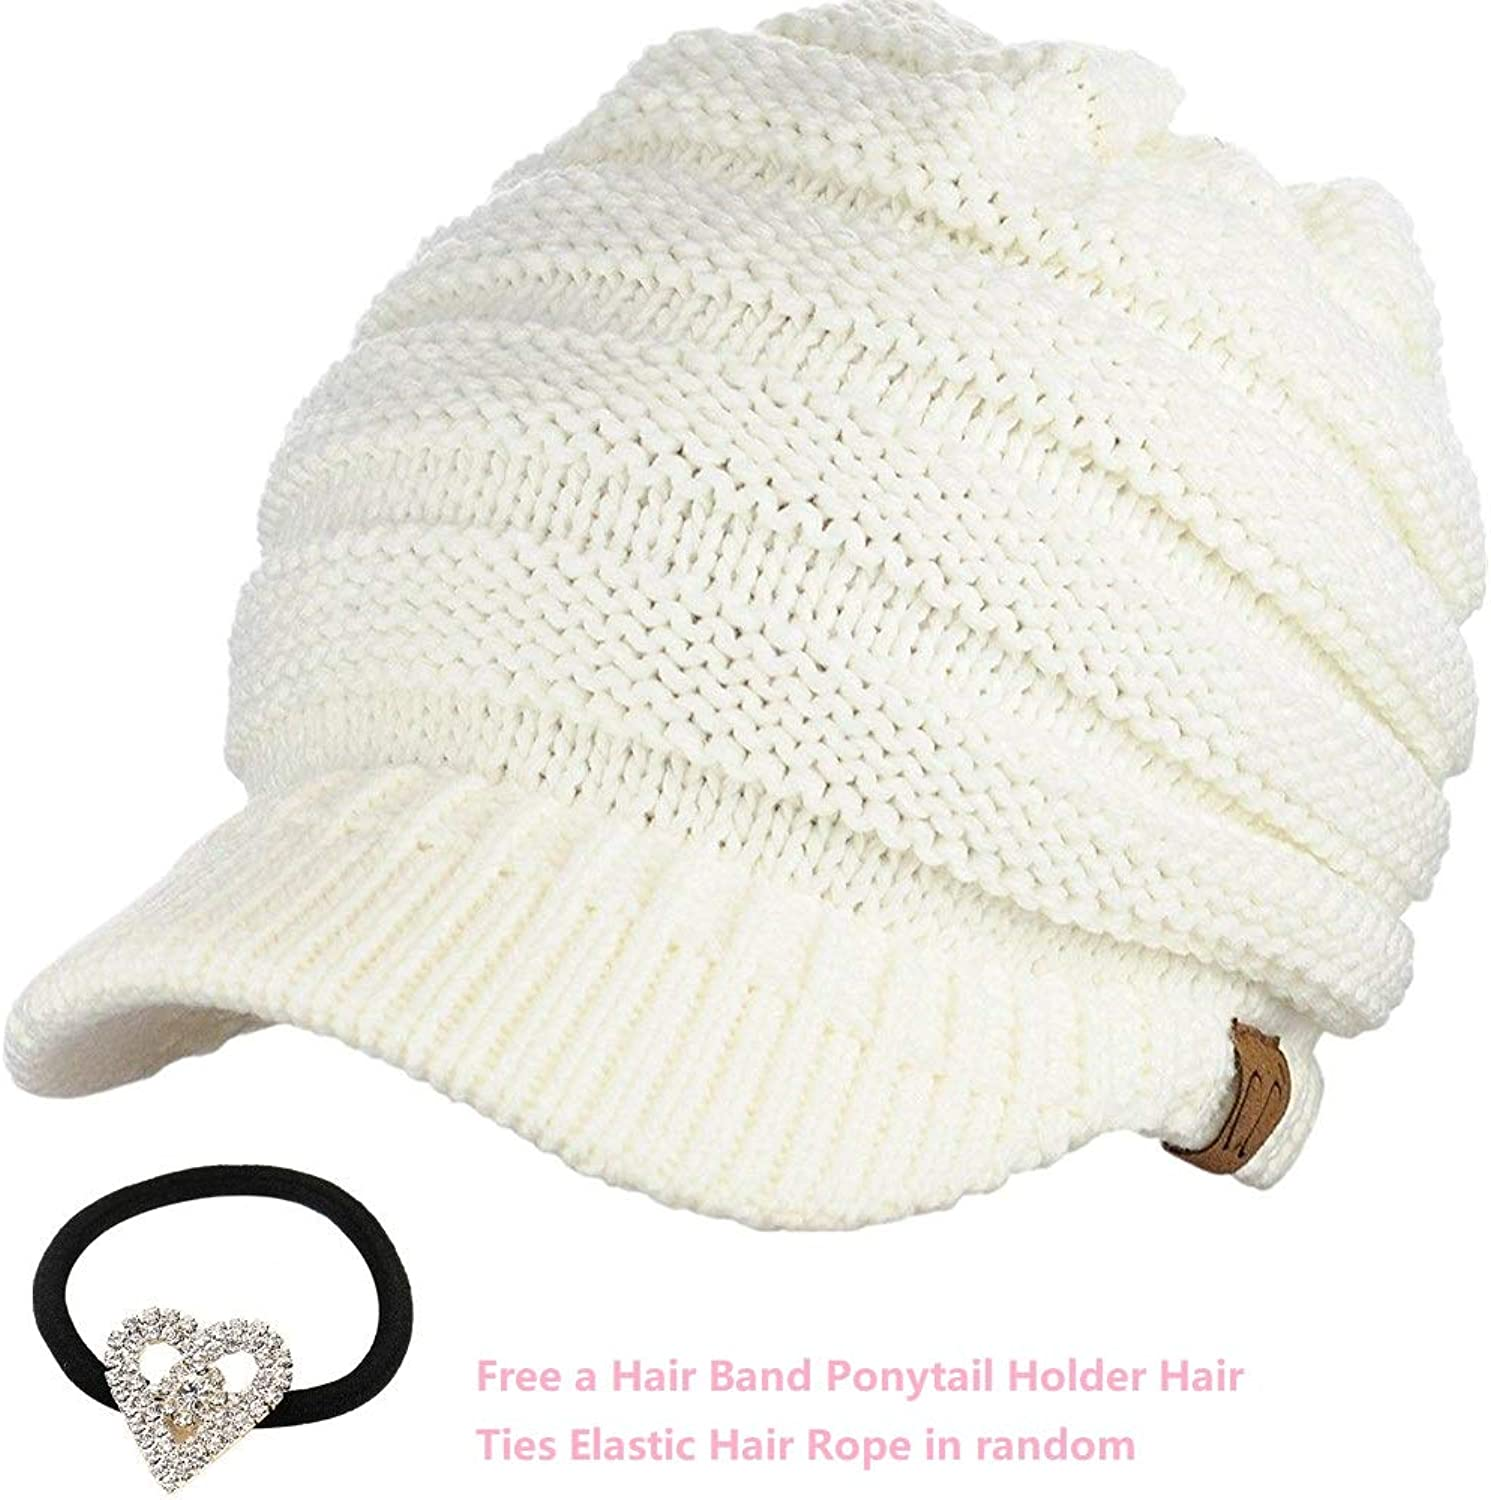 Beanie Ponytail Messy Tail Warm Winter Outdoor Runner High Bun White Ribbed Hat Cap Adjustable for Women